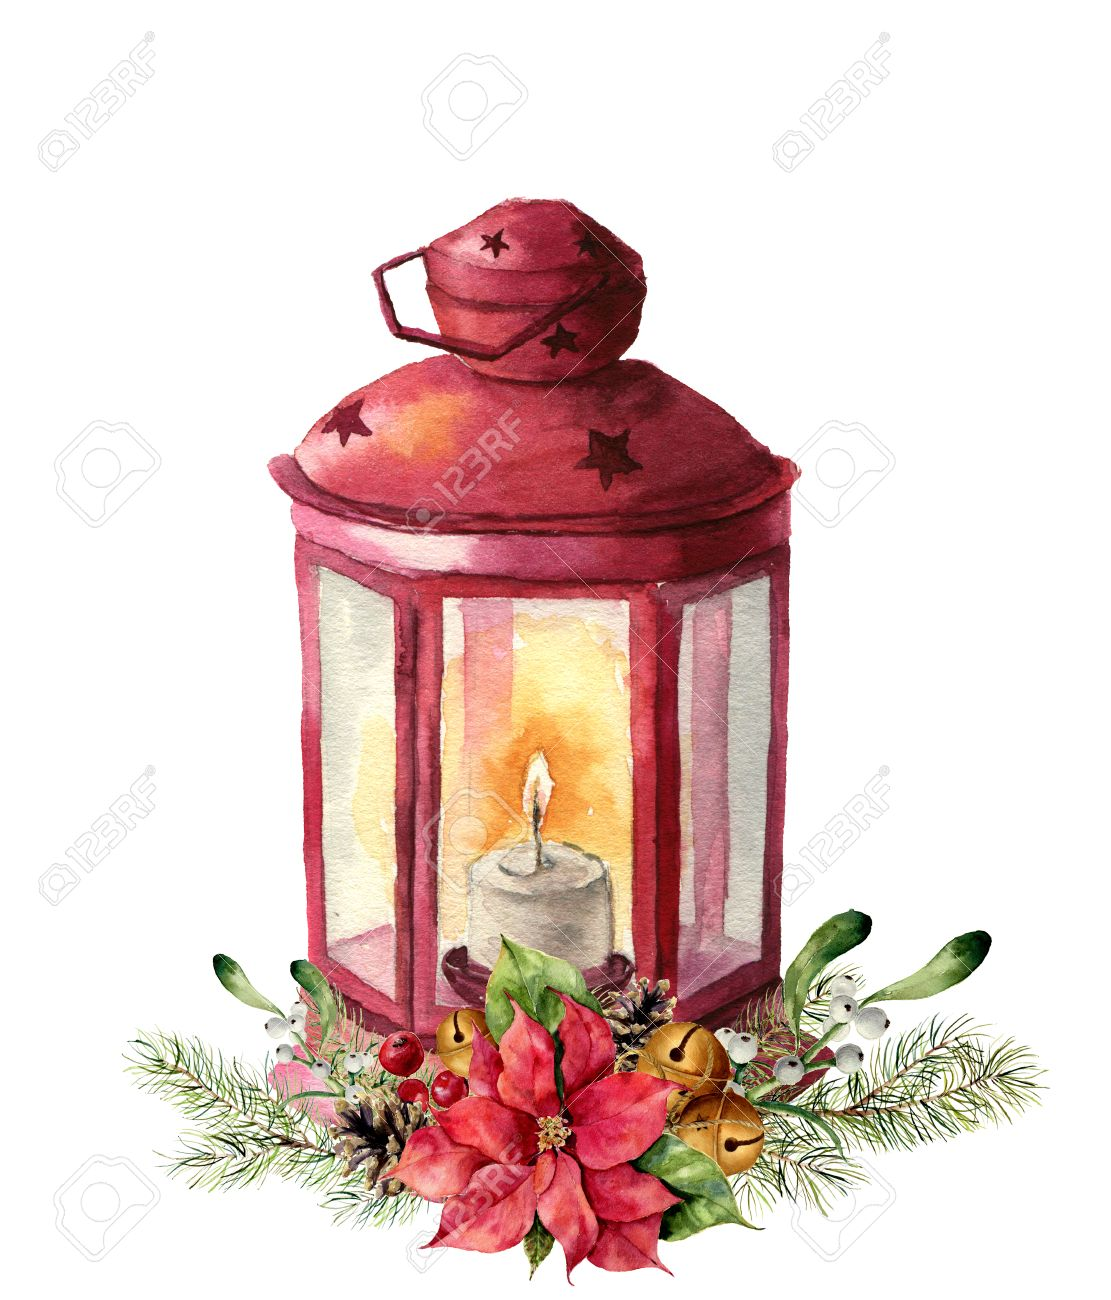 Christmas Lantern.Watercolor Traditional Red Lantern With Candle And Floral Decor